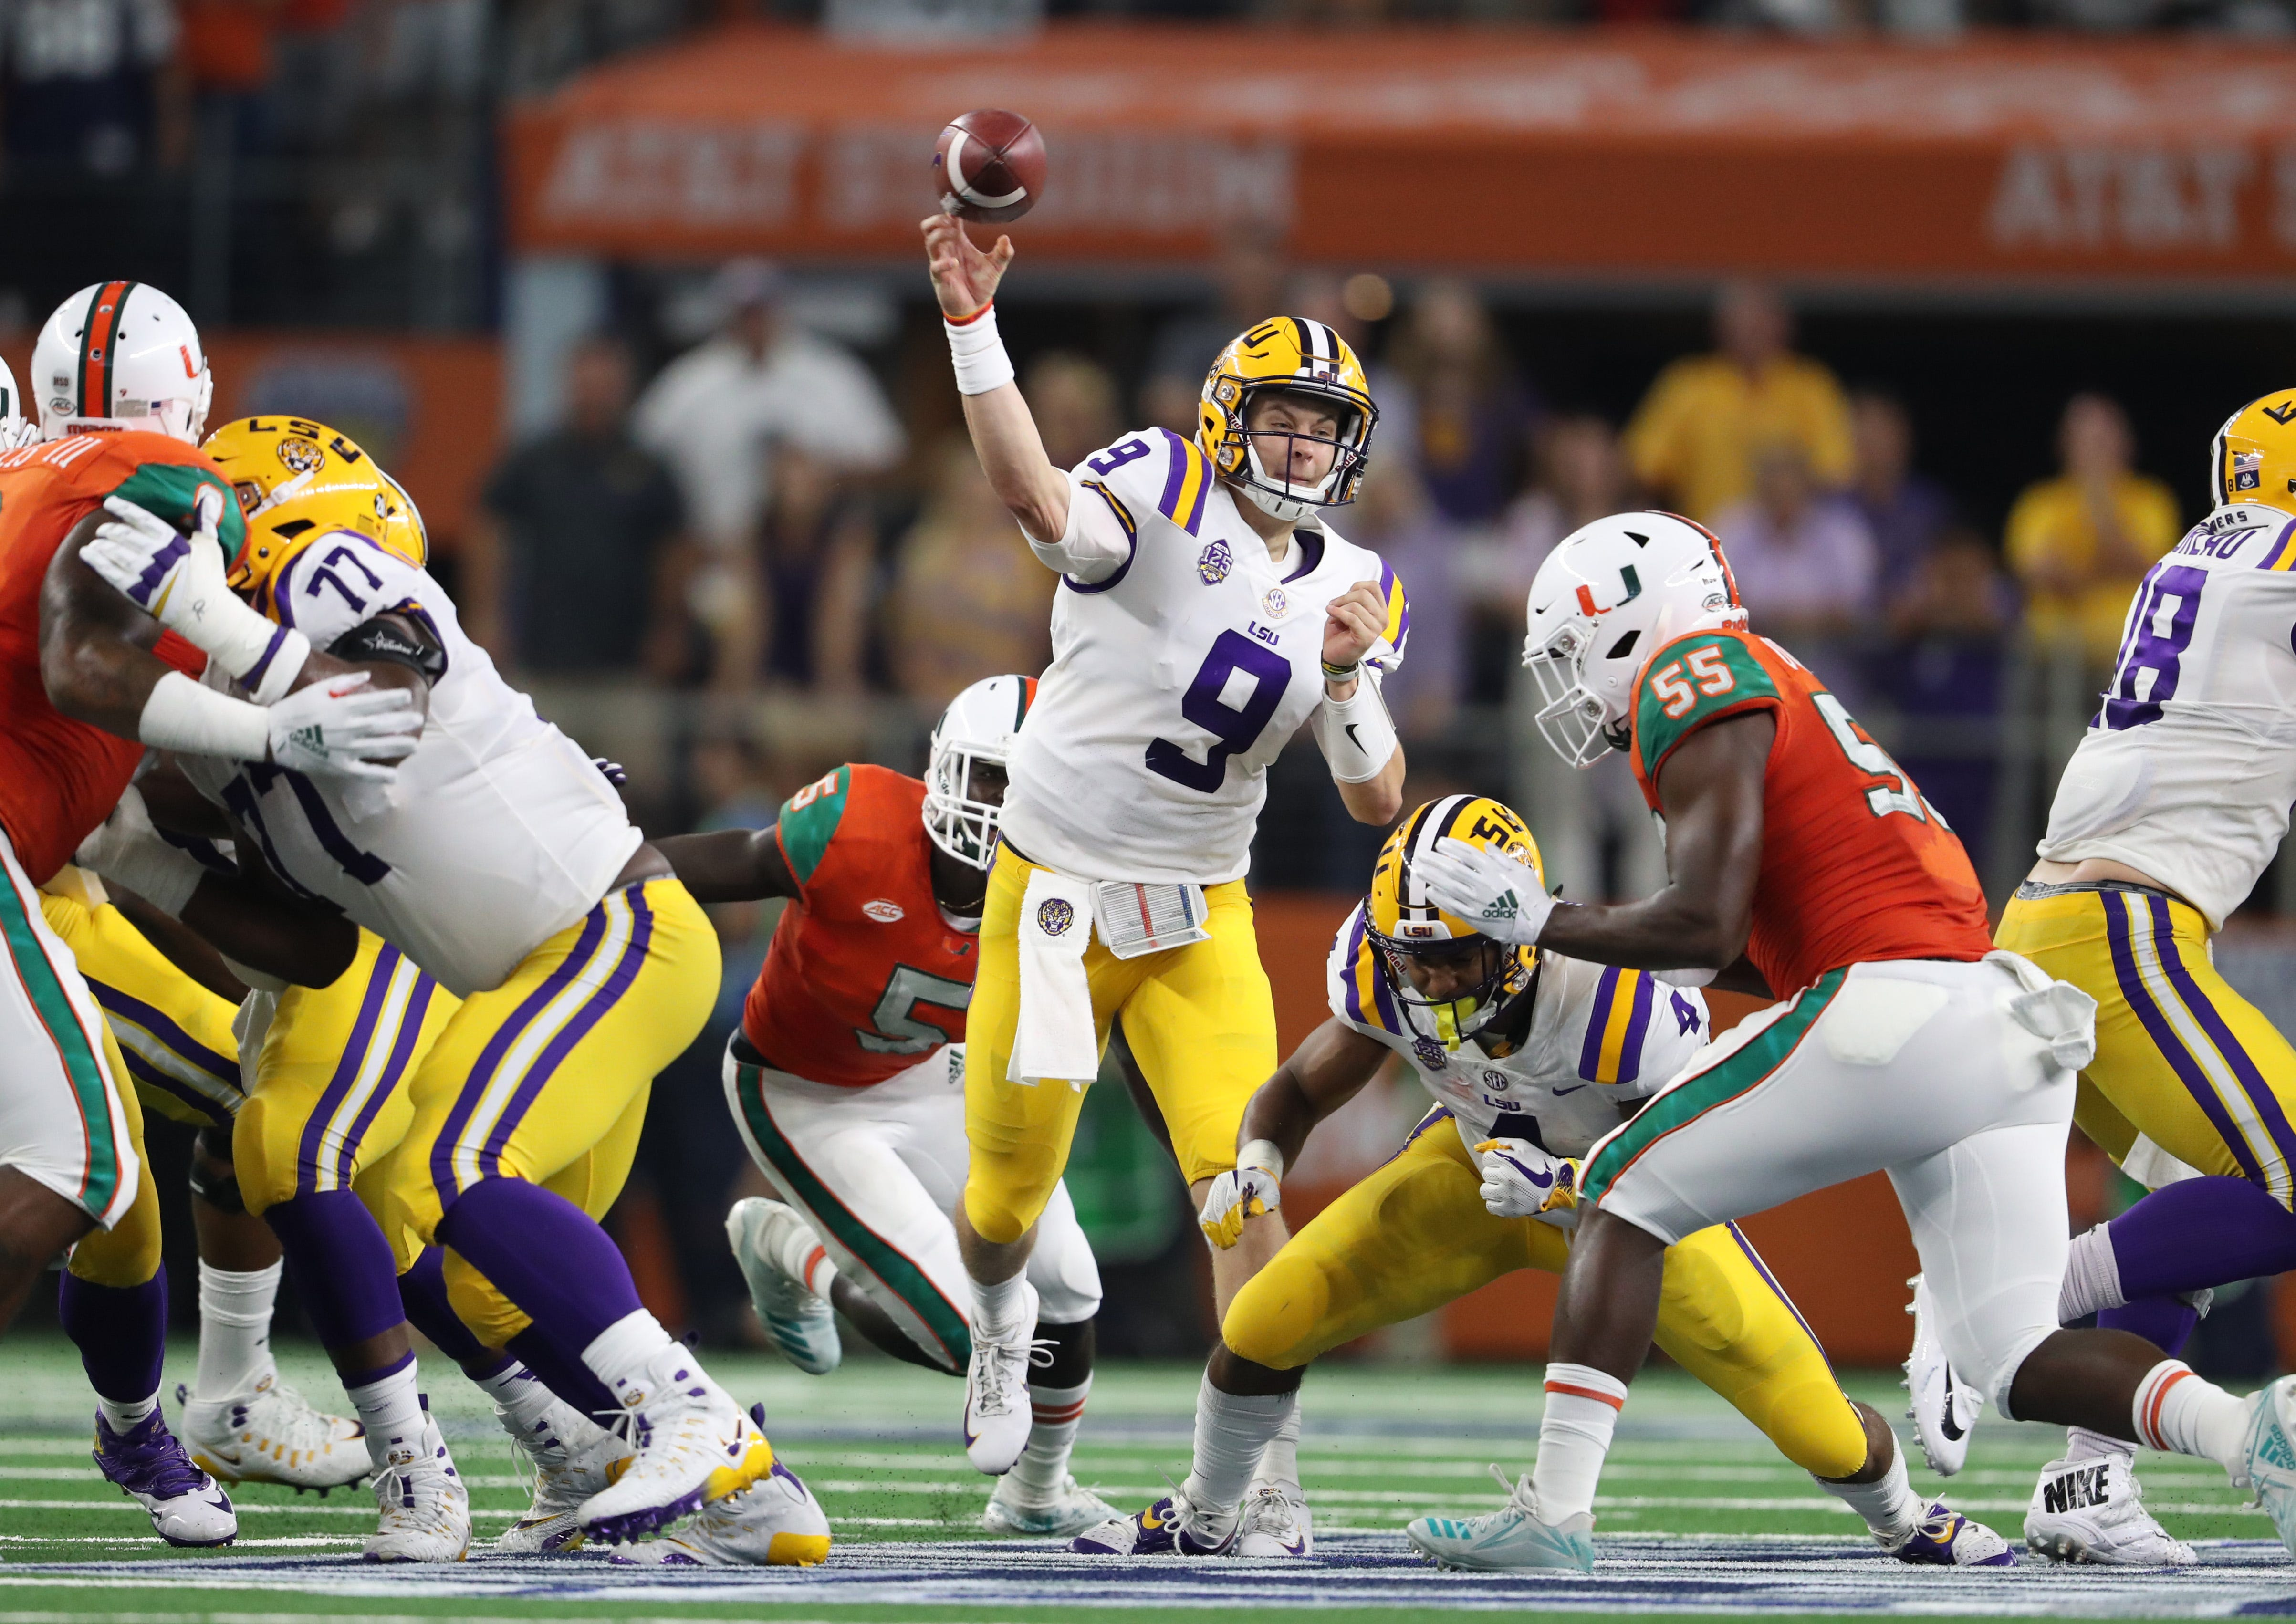 LSU dominates Miami, but Tigers still have questions to answer